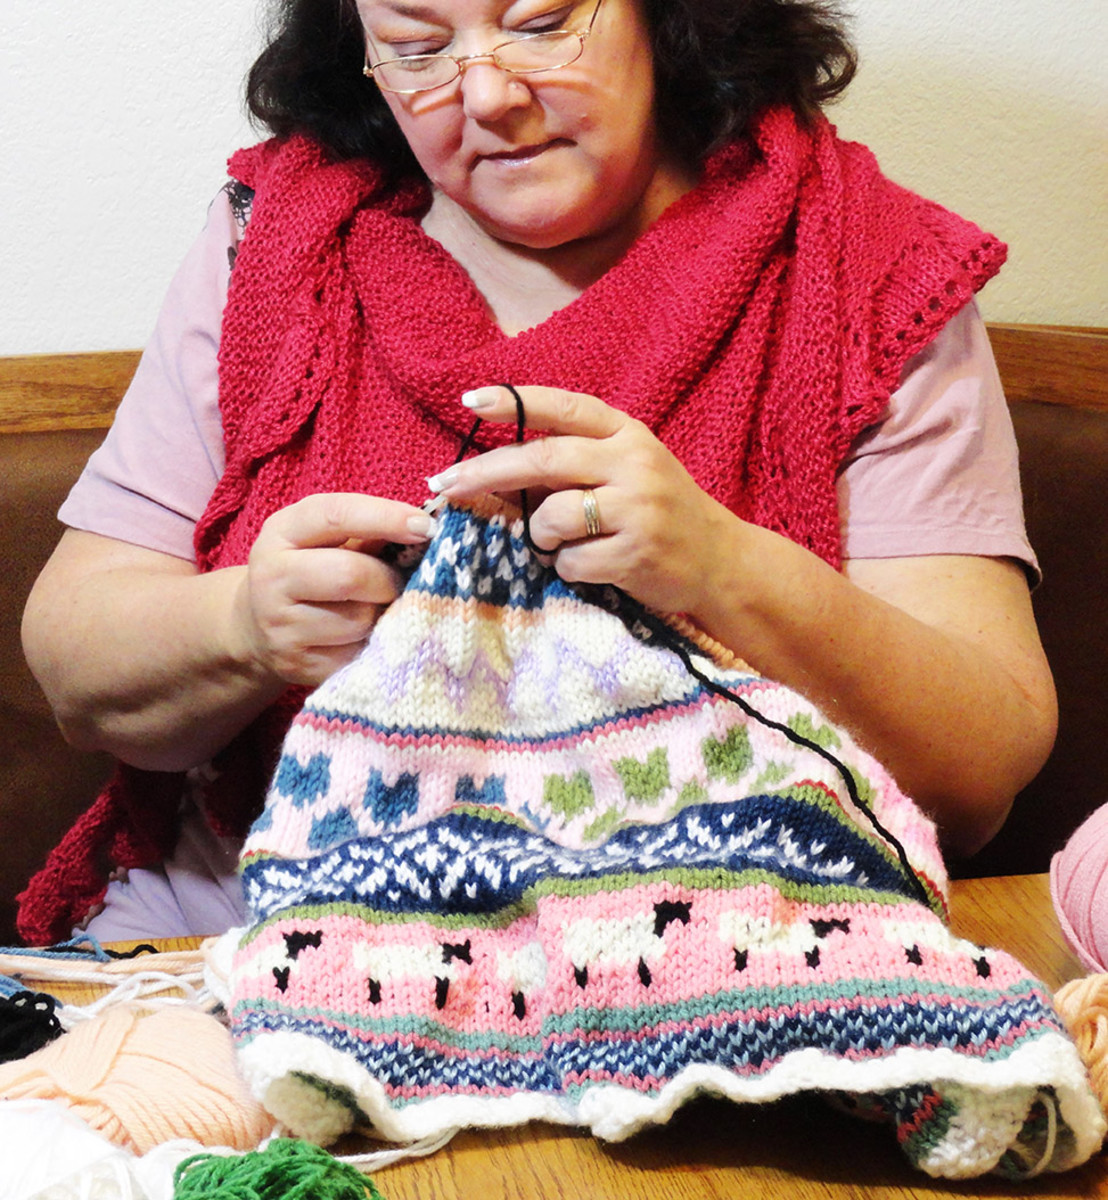 In this photo I am knitting a Fair Isle Baby Blanket for a grandchild.